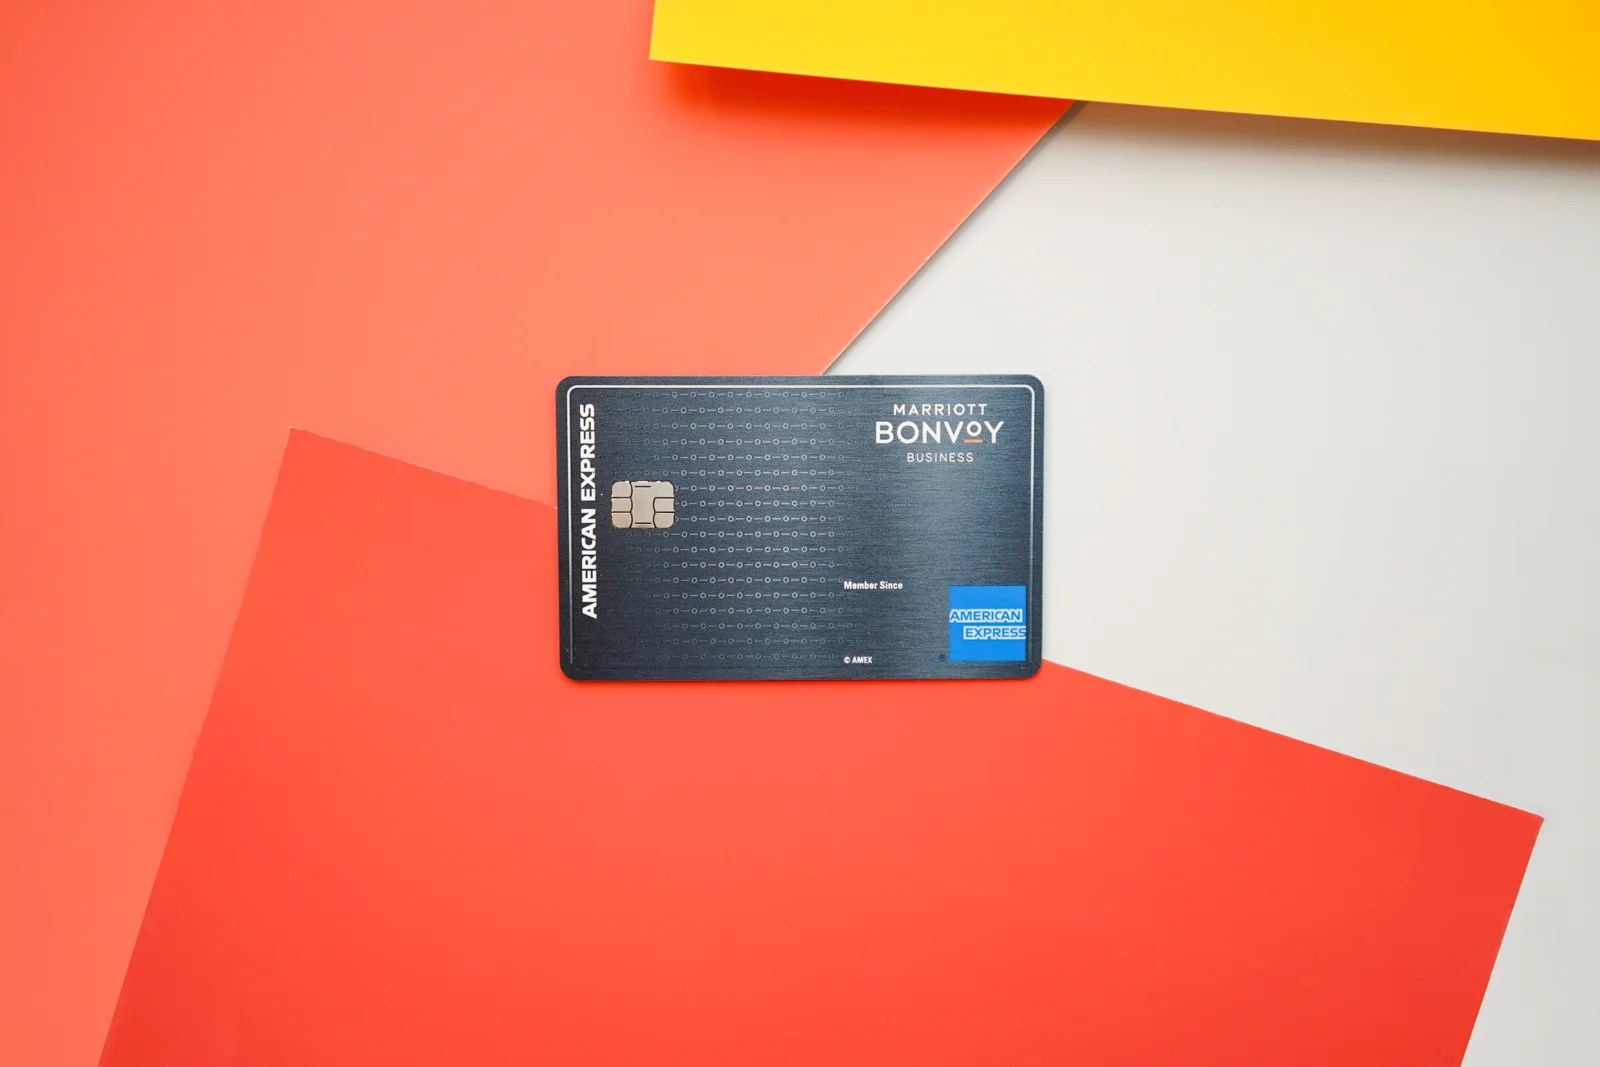 Credit Card Review: Marriott Bonvoy Business American Express Card